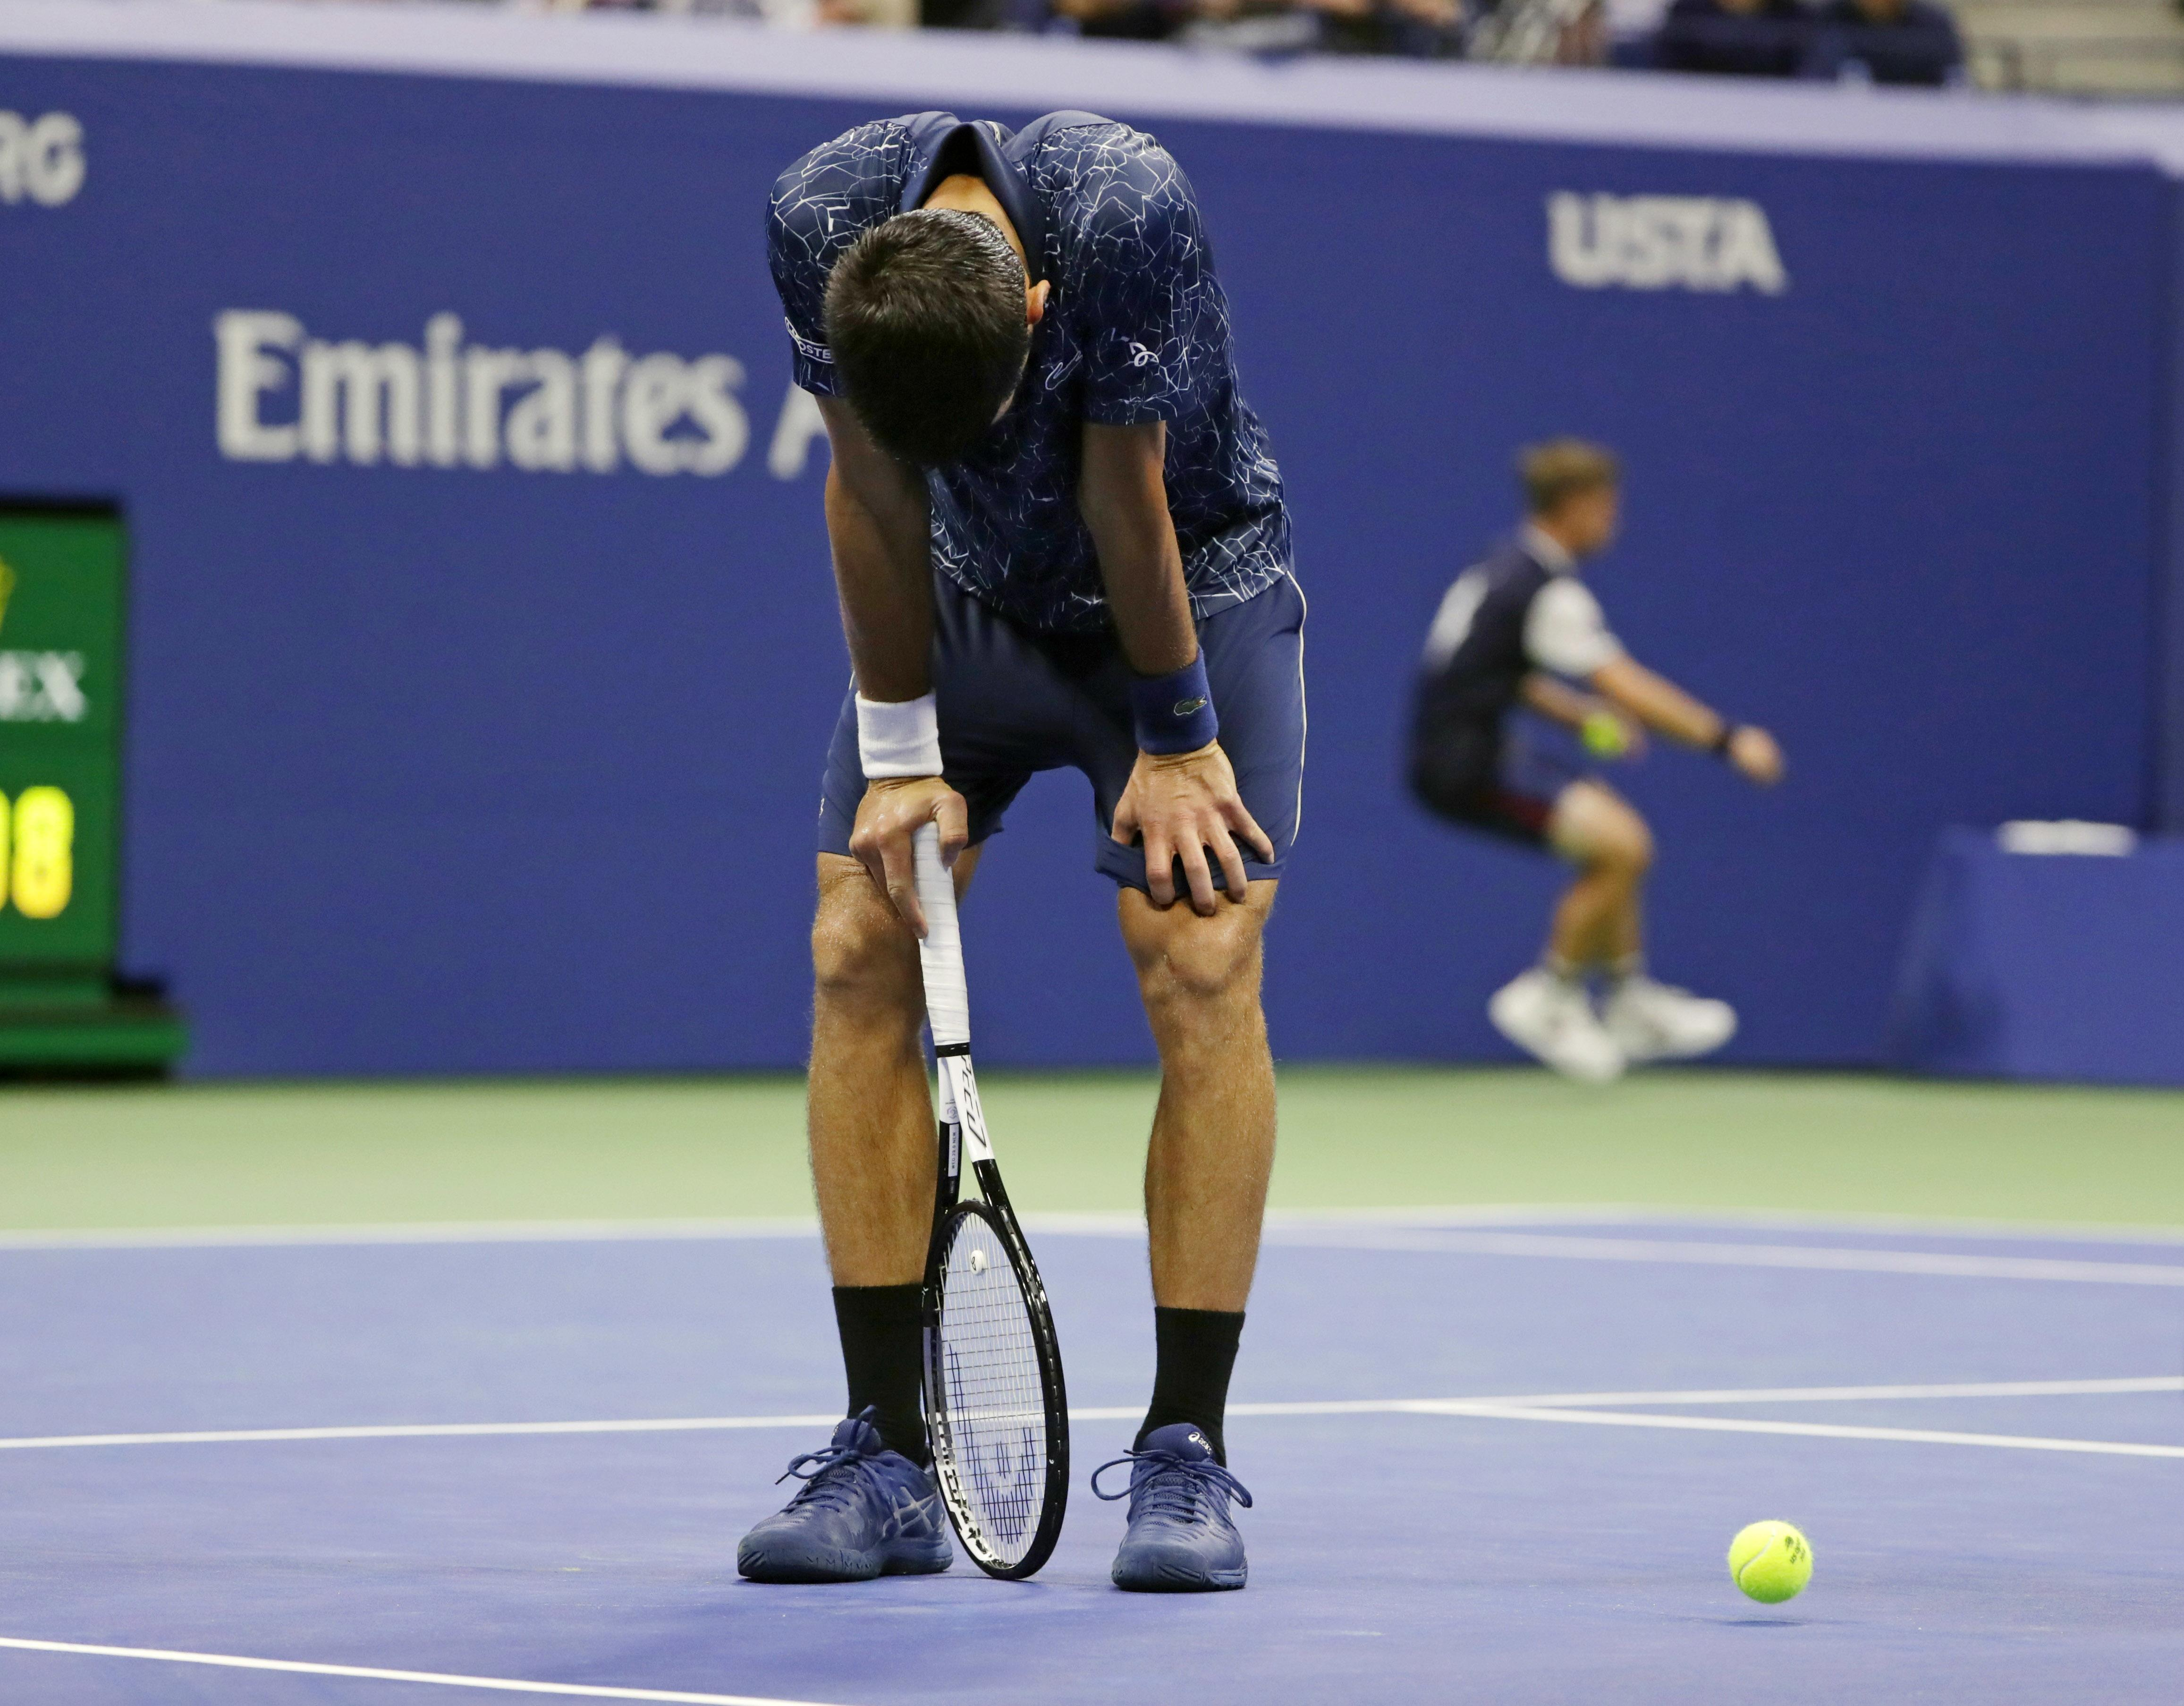 An exhausted Novak Djokovic bends over to catch his breath at the US Open